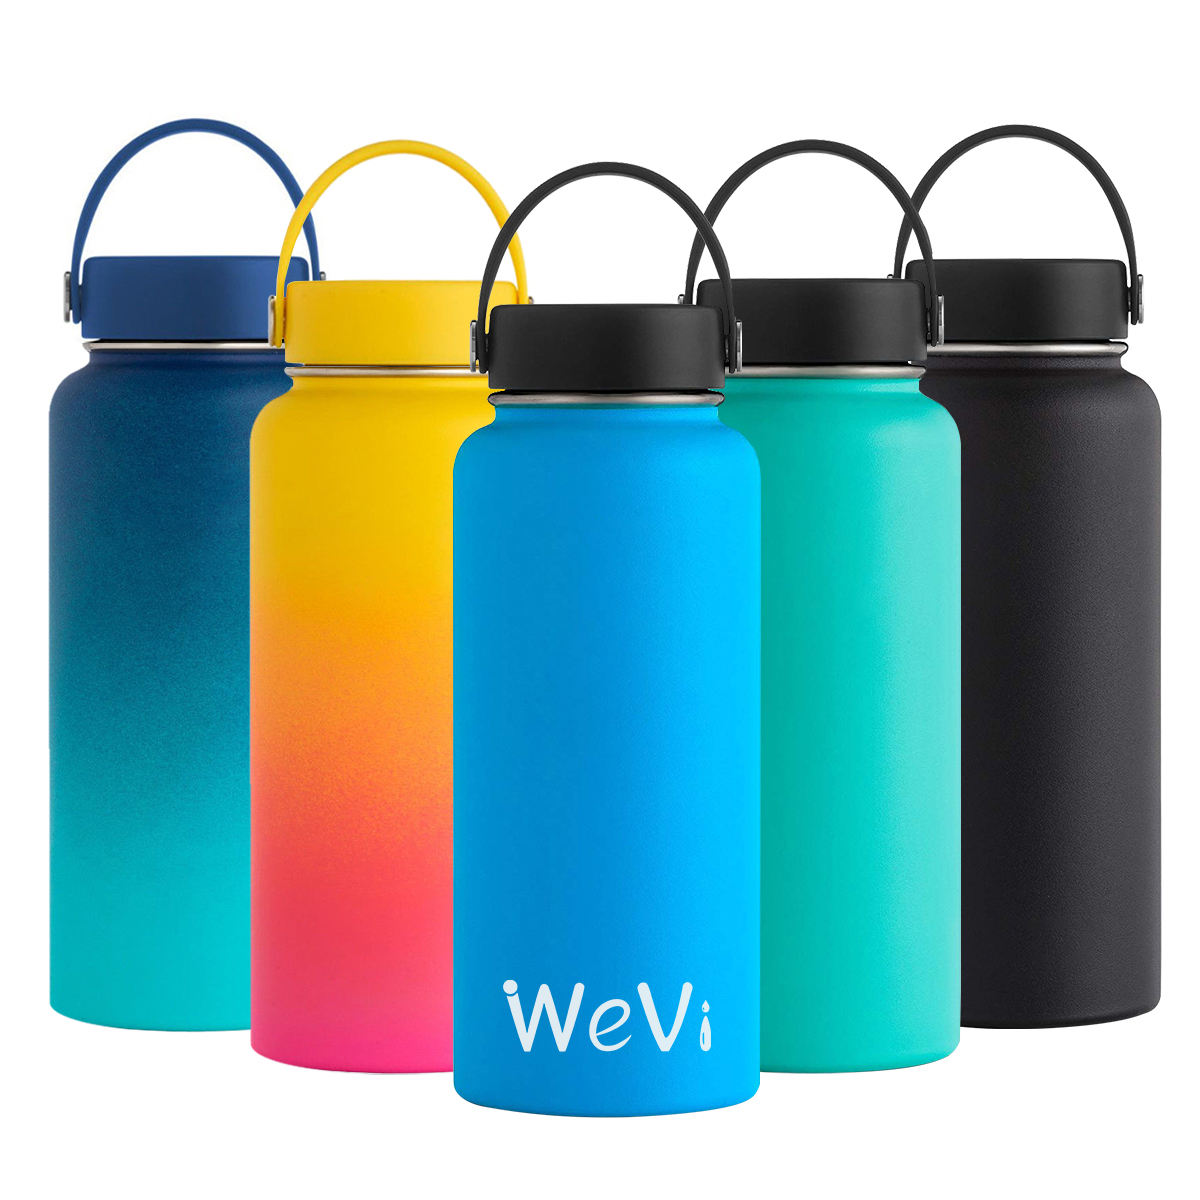 Wevi High quality double wall vacuum insulated stainless steel sport water bottle with straw wholesale